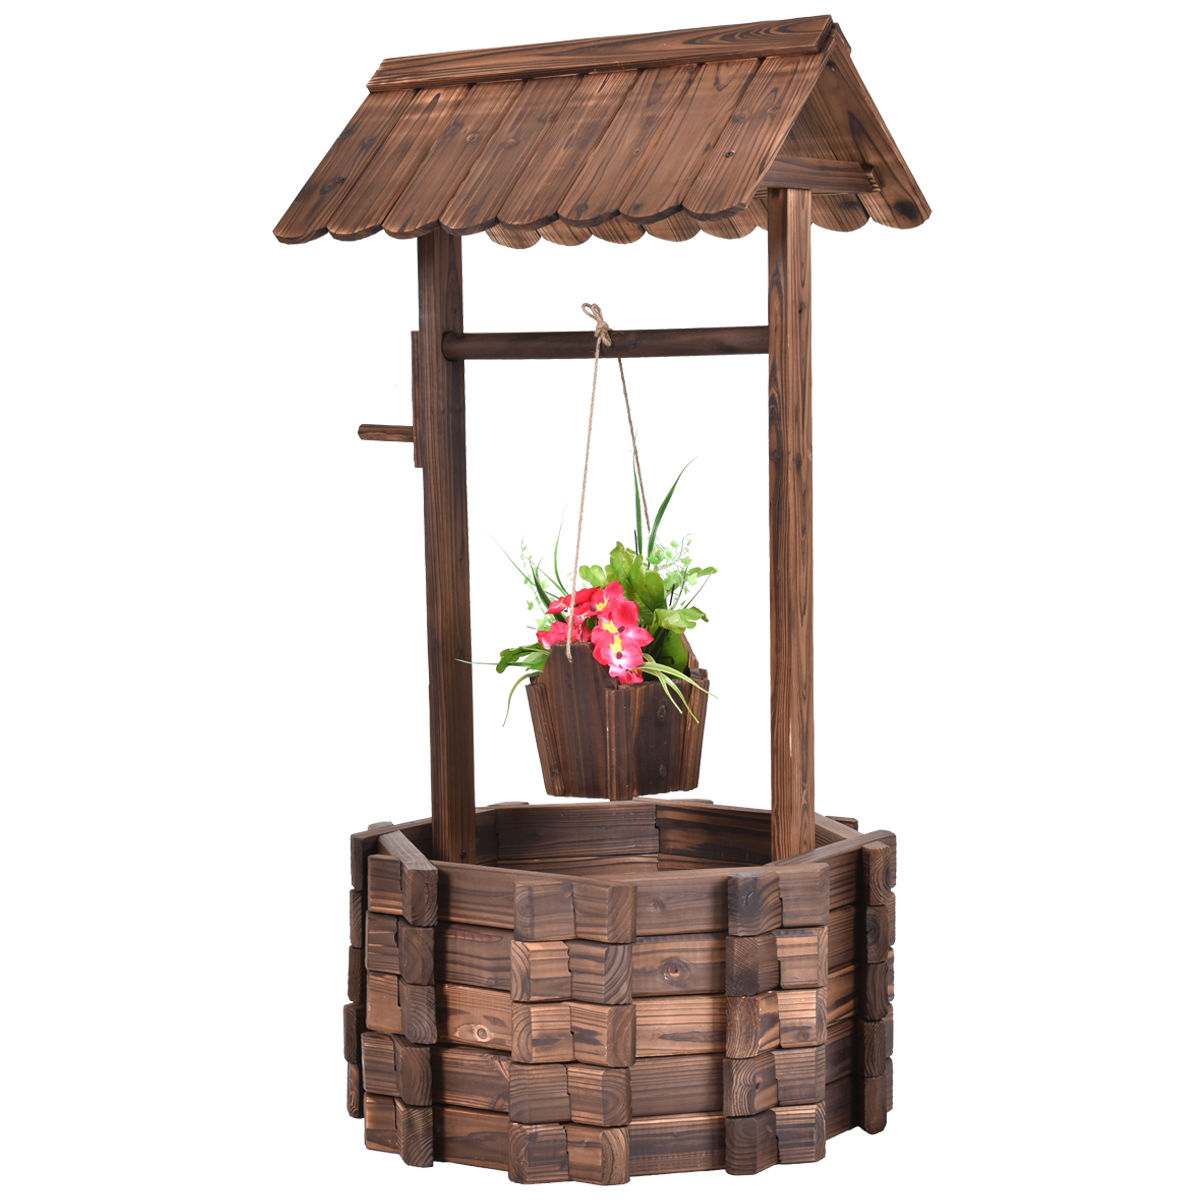 Costway Outdoor Wooden Wishing Well Bucket Flower Plants Planter Patio Garden Home Decor by Planters